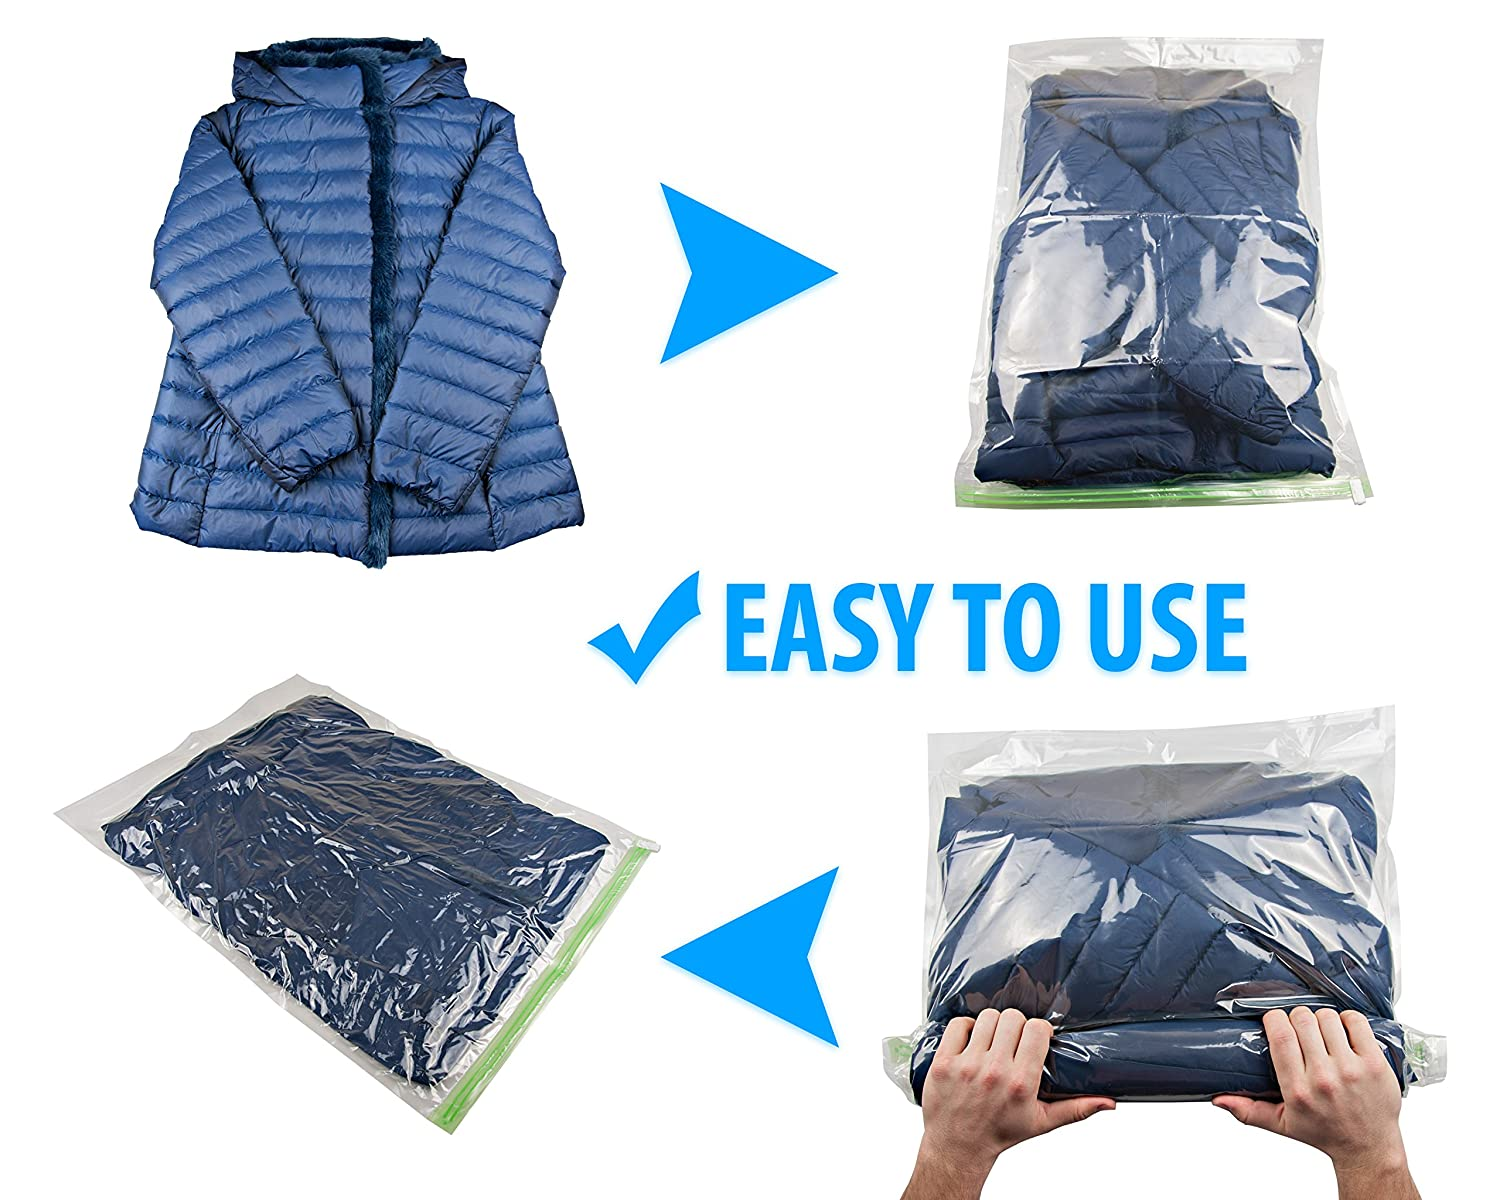 REUSABLE Packing Bags for Travel 5 Large 5 Medium No Need Pump or Vacuum